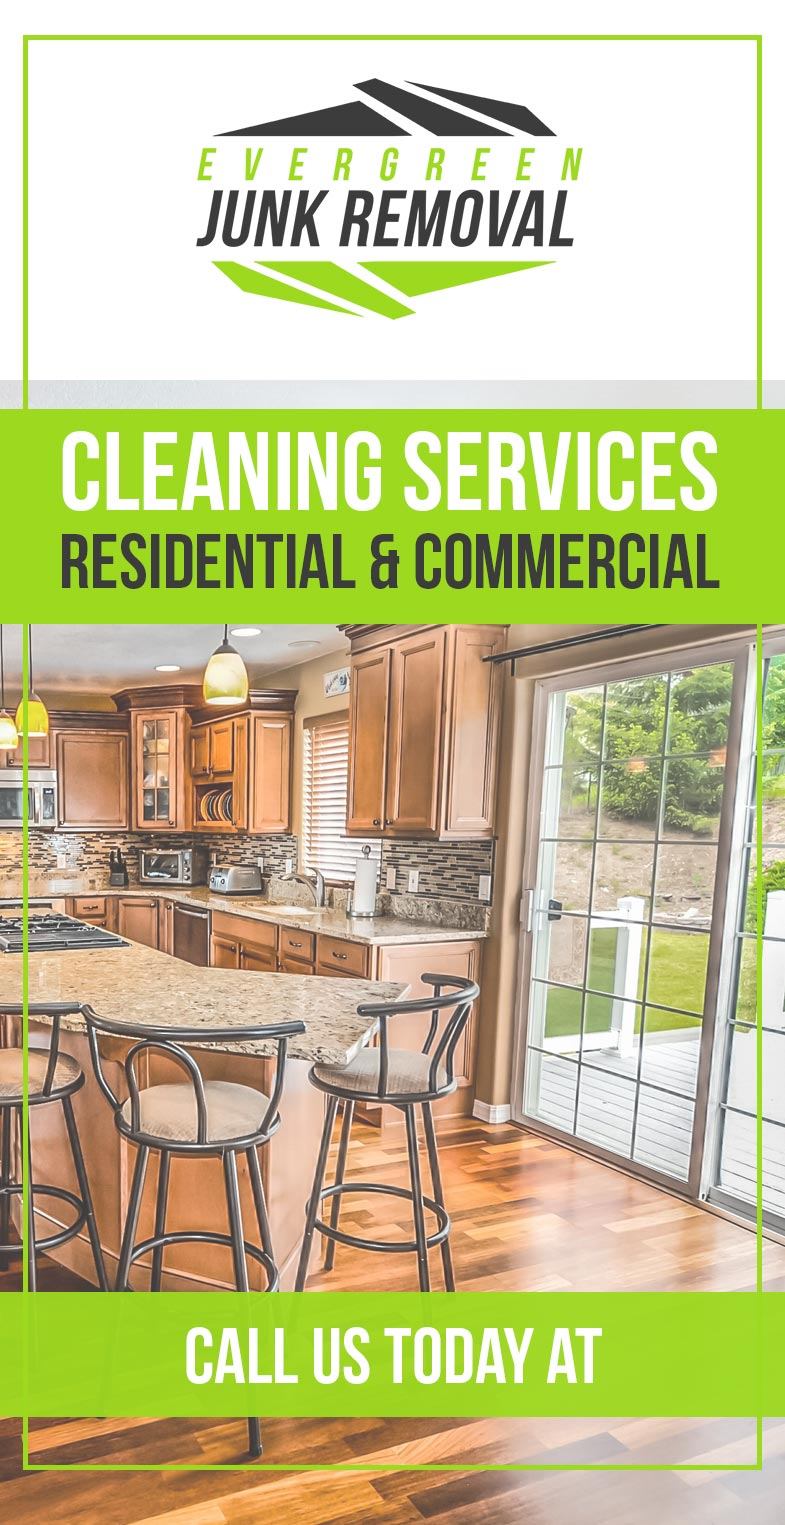 Loxahatchee Groves Maid Services